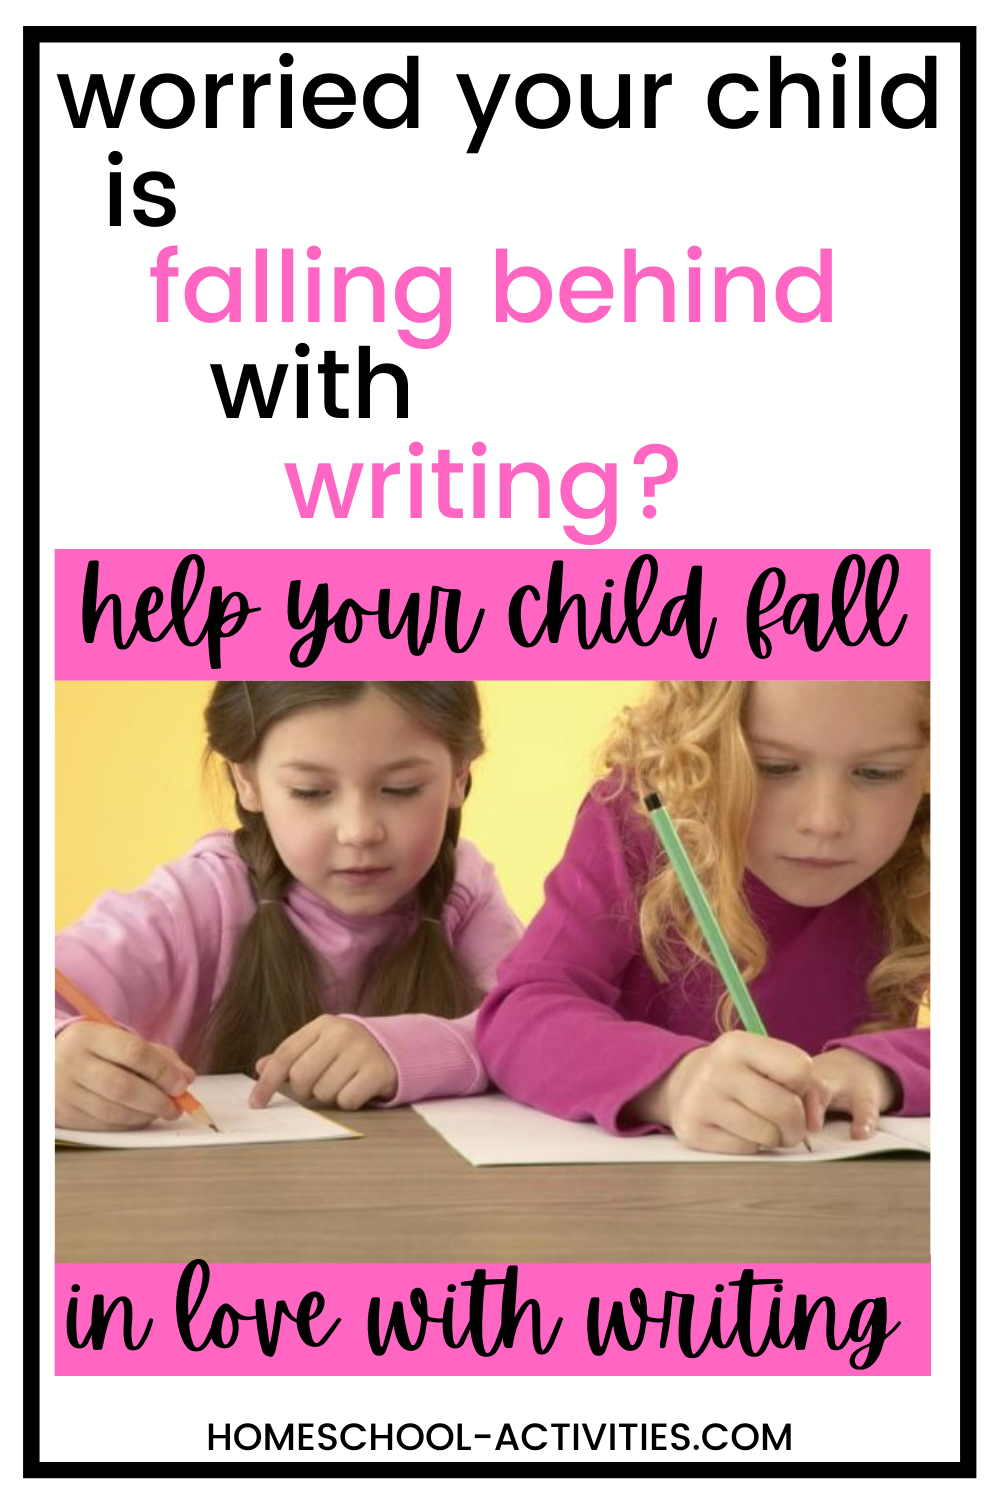 Creative writing tips, ideas and activities for kids